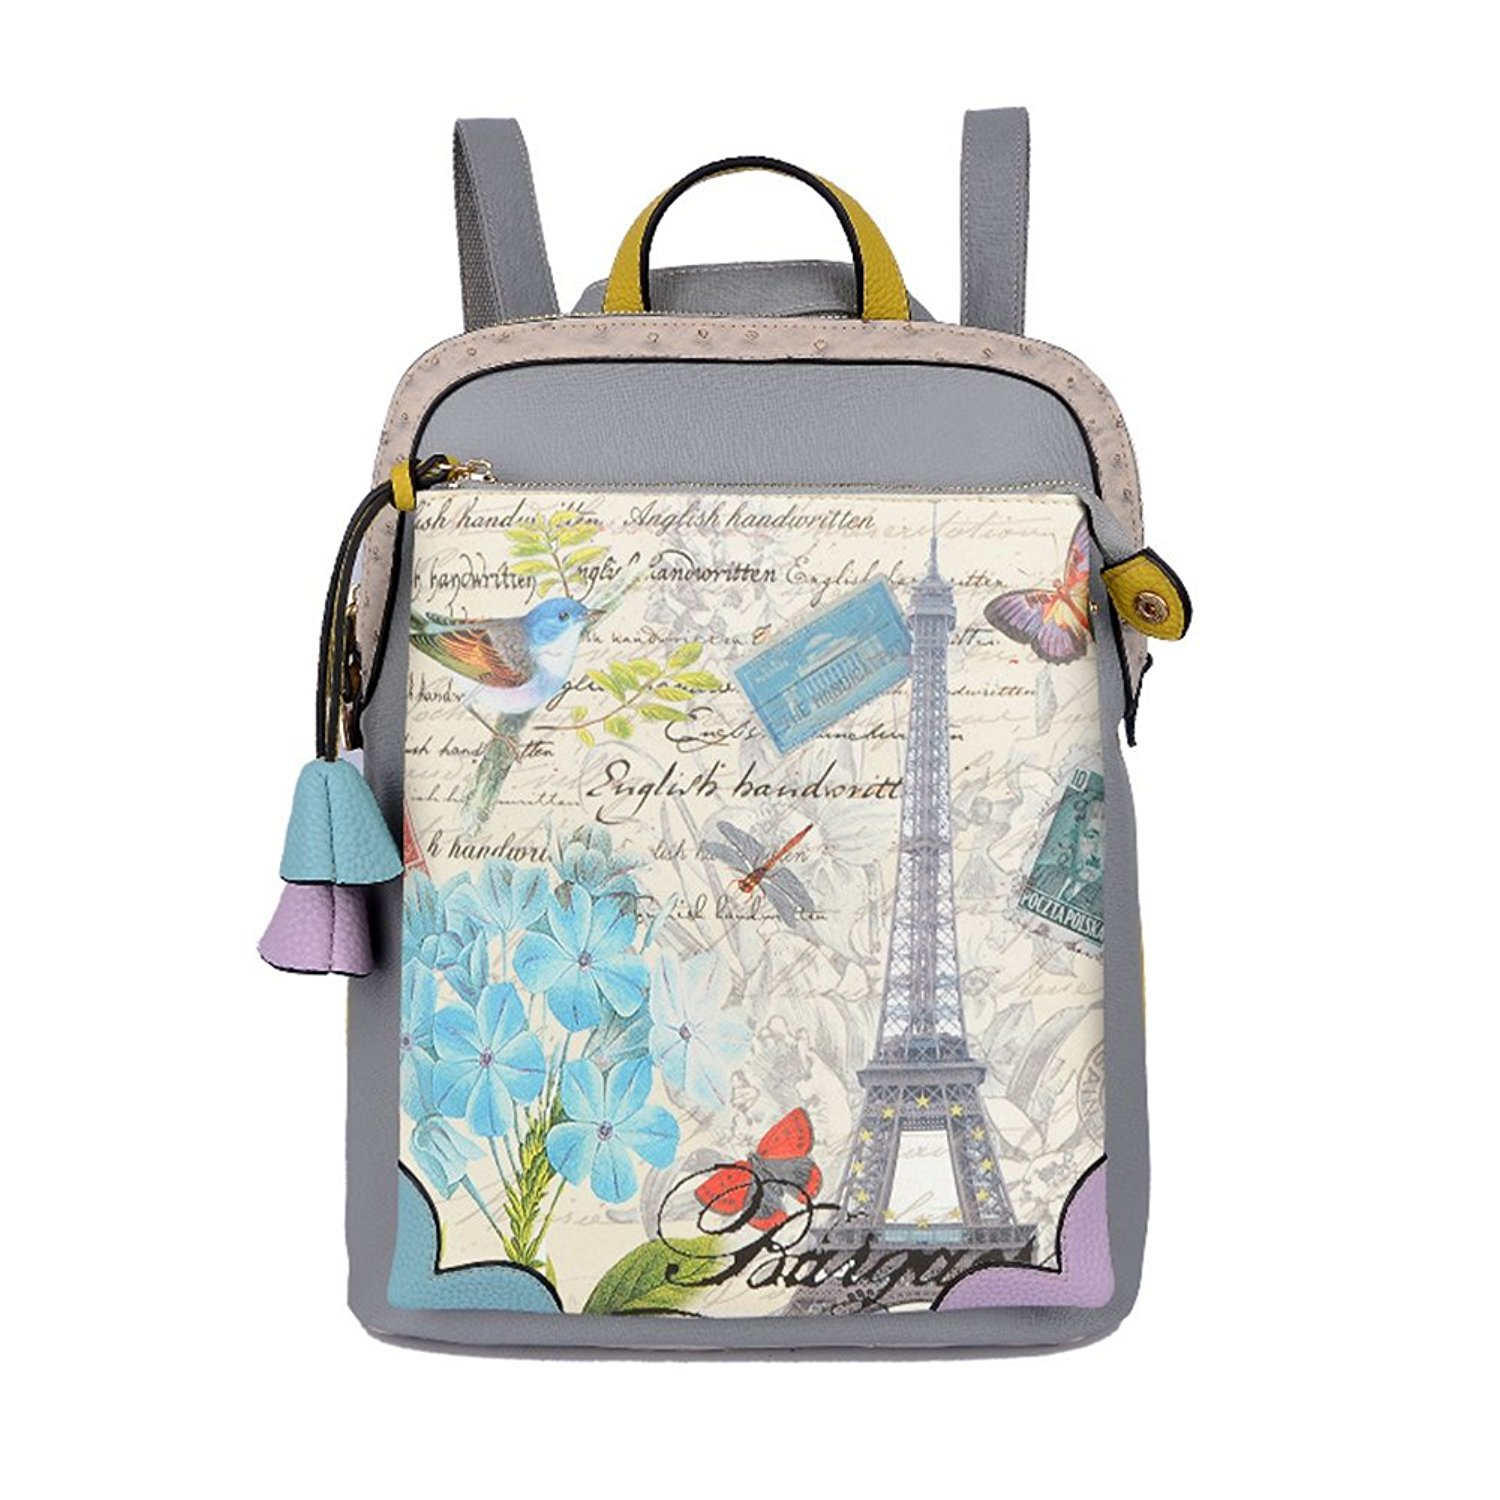 LYCSIX66 Fashionable Durable Waterproof PU Leather Backpack for Girls